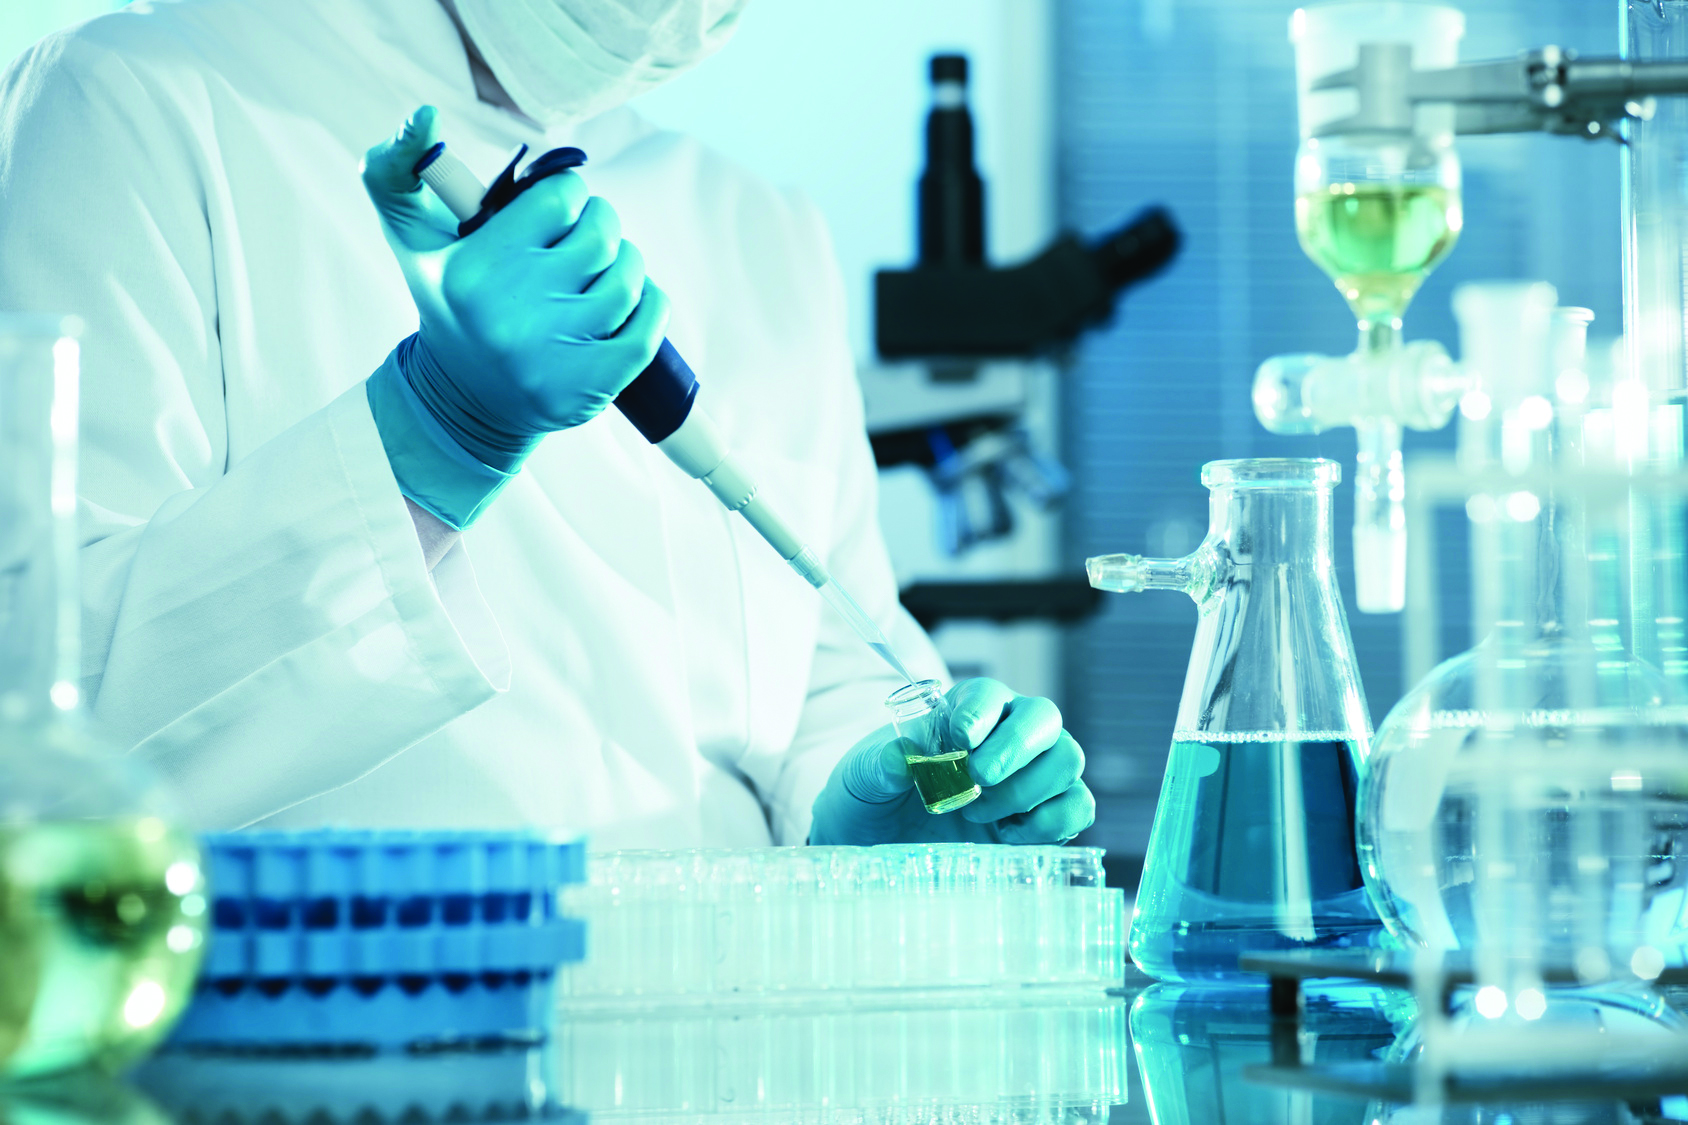 Air quality of the workplace supported by accredited laboratories